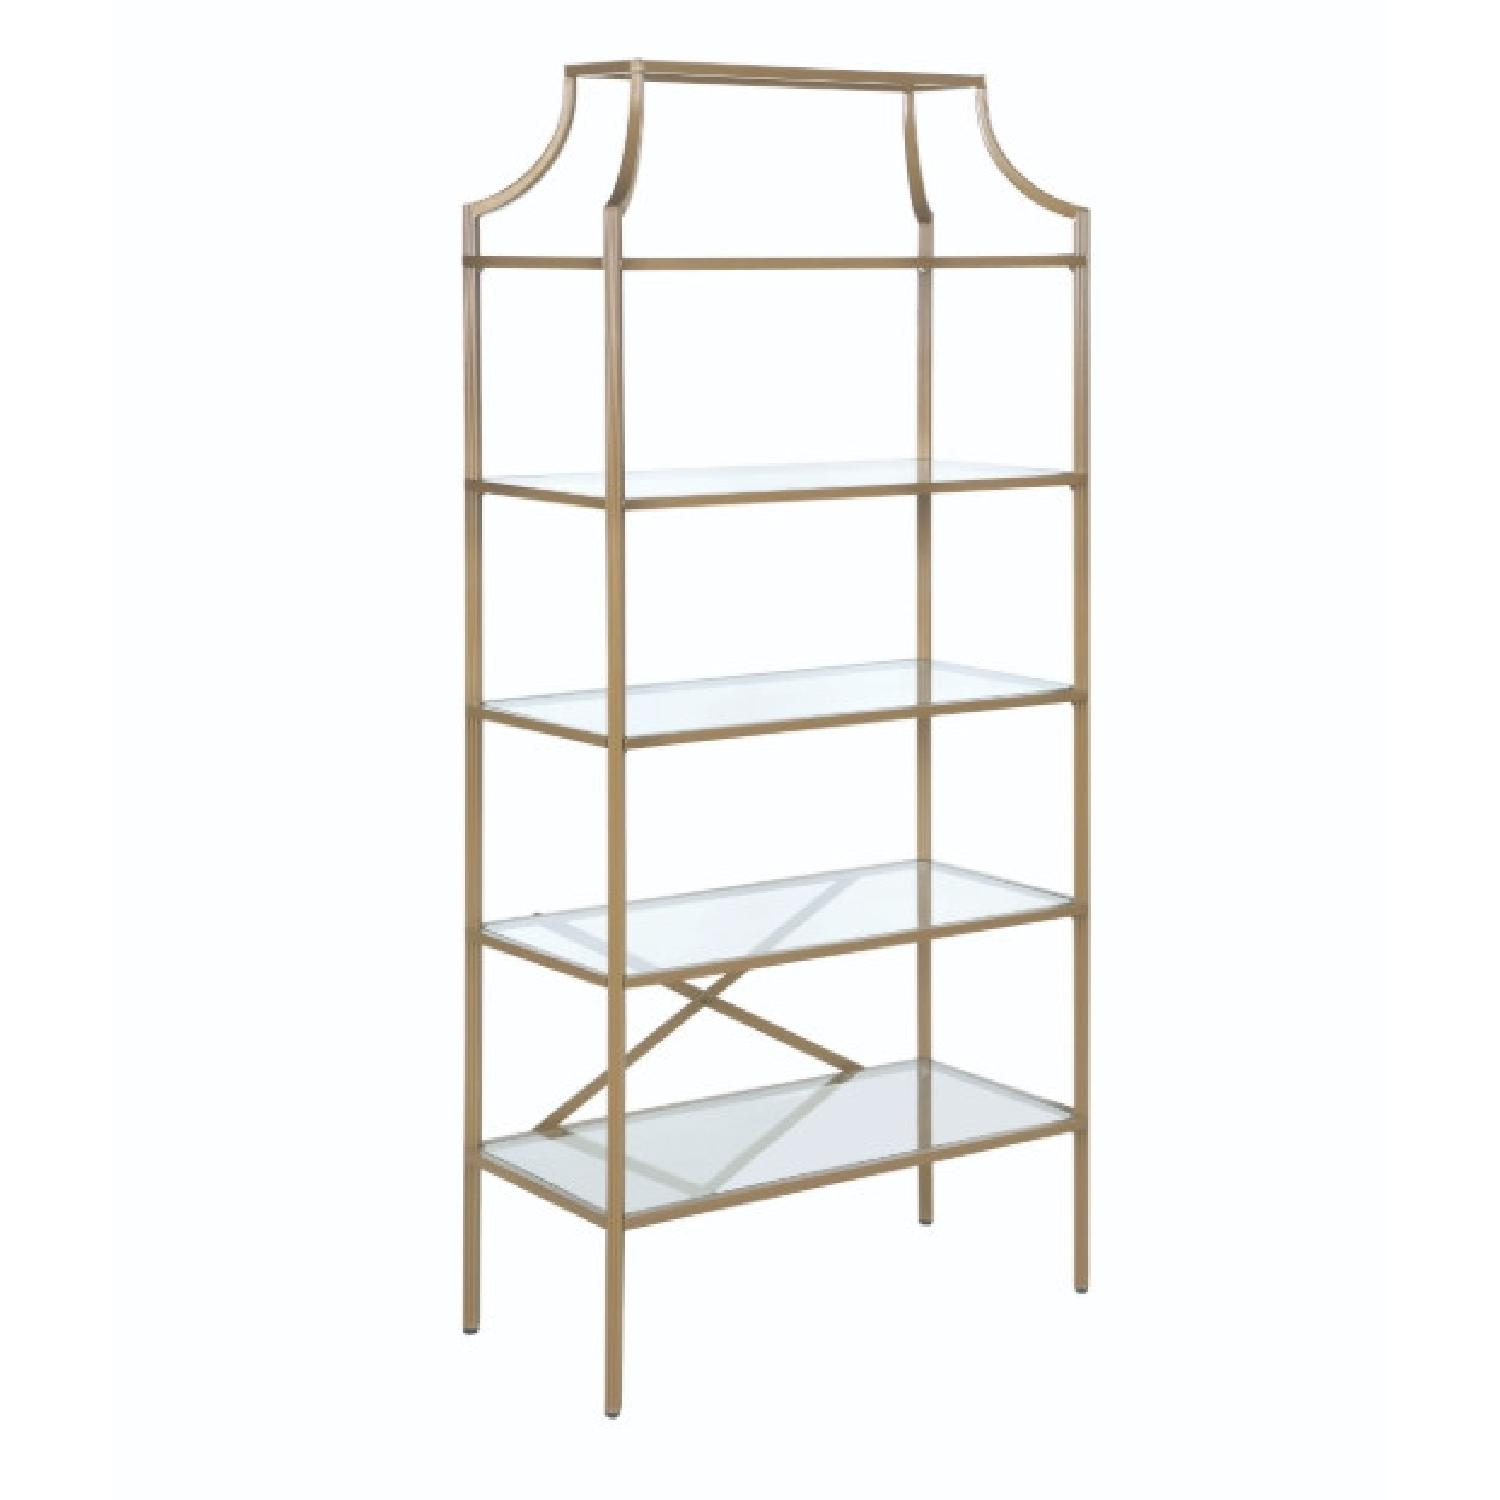 Modern Display Unit w/ Gold Frame & Tempered Glass Shelves - image-0